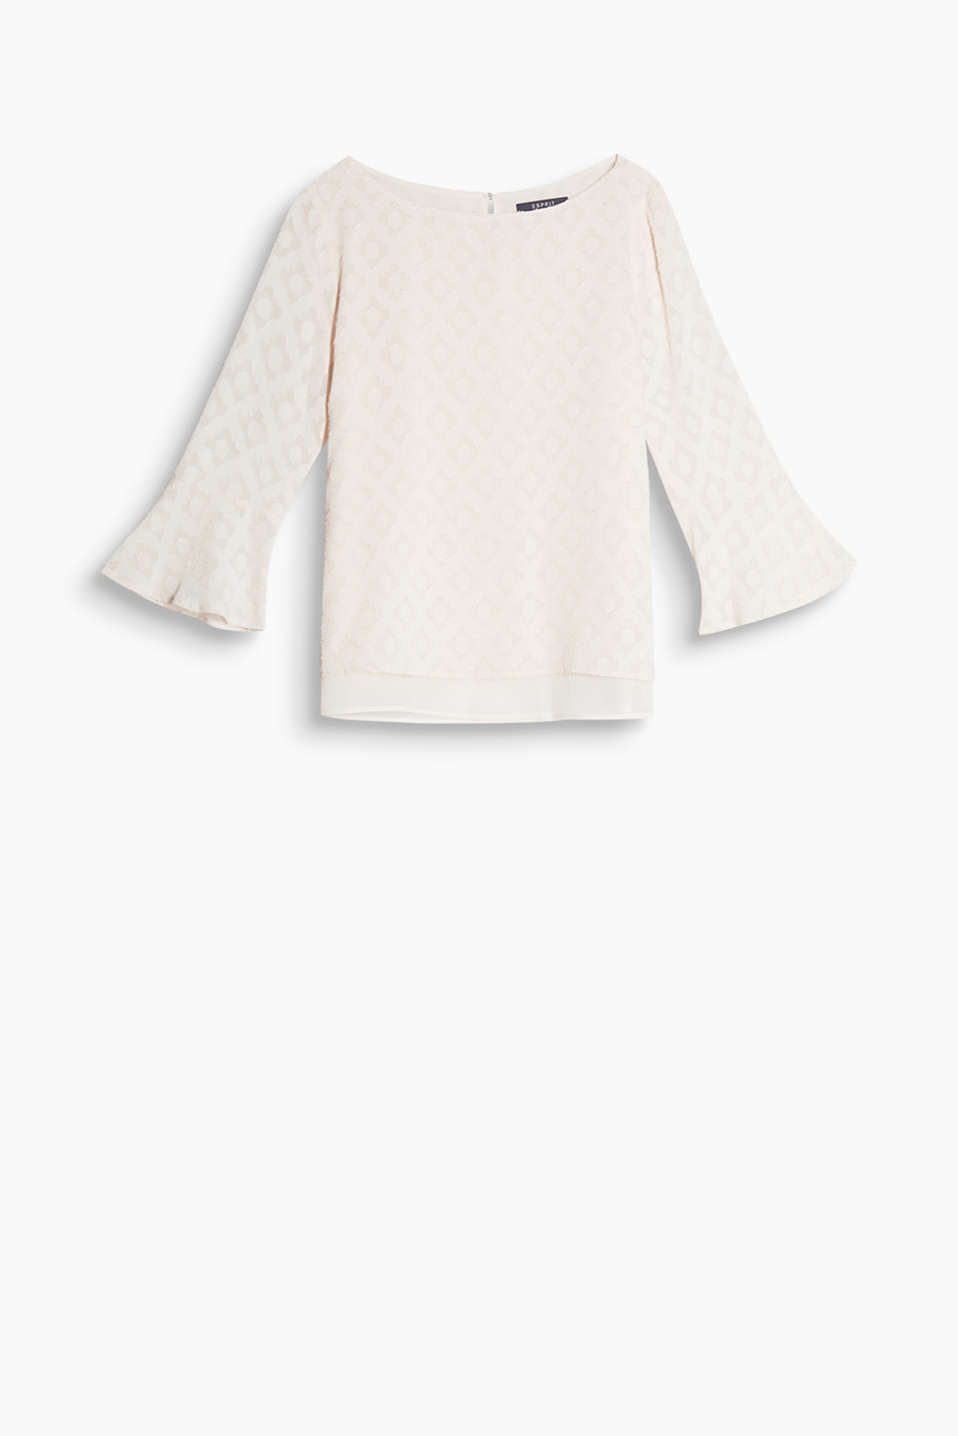 Dainty blouse with a burnt-out pattern, trumpet sleeves and a layered-effect chiffon hem border